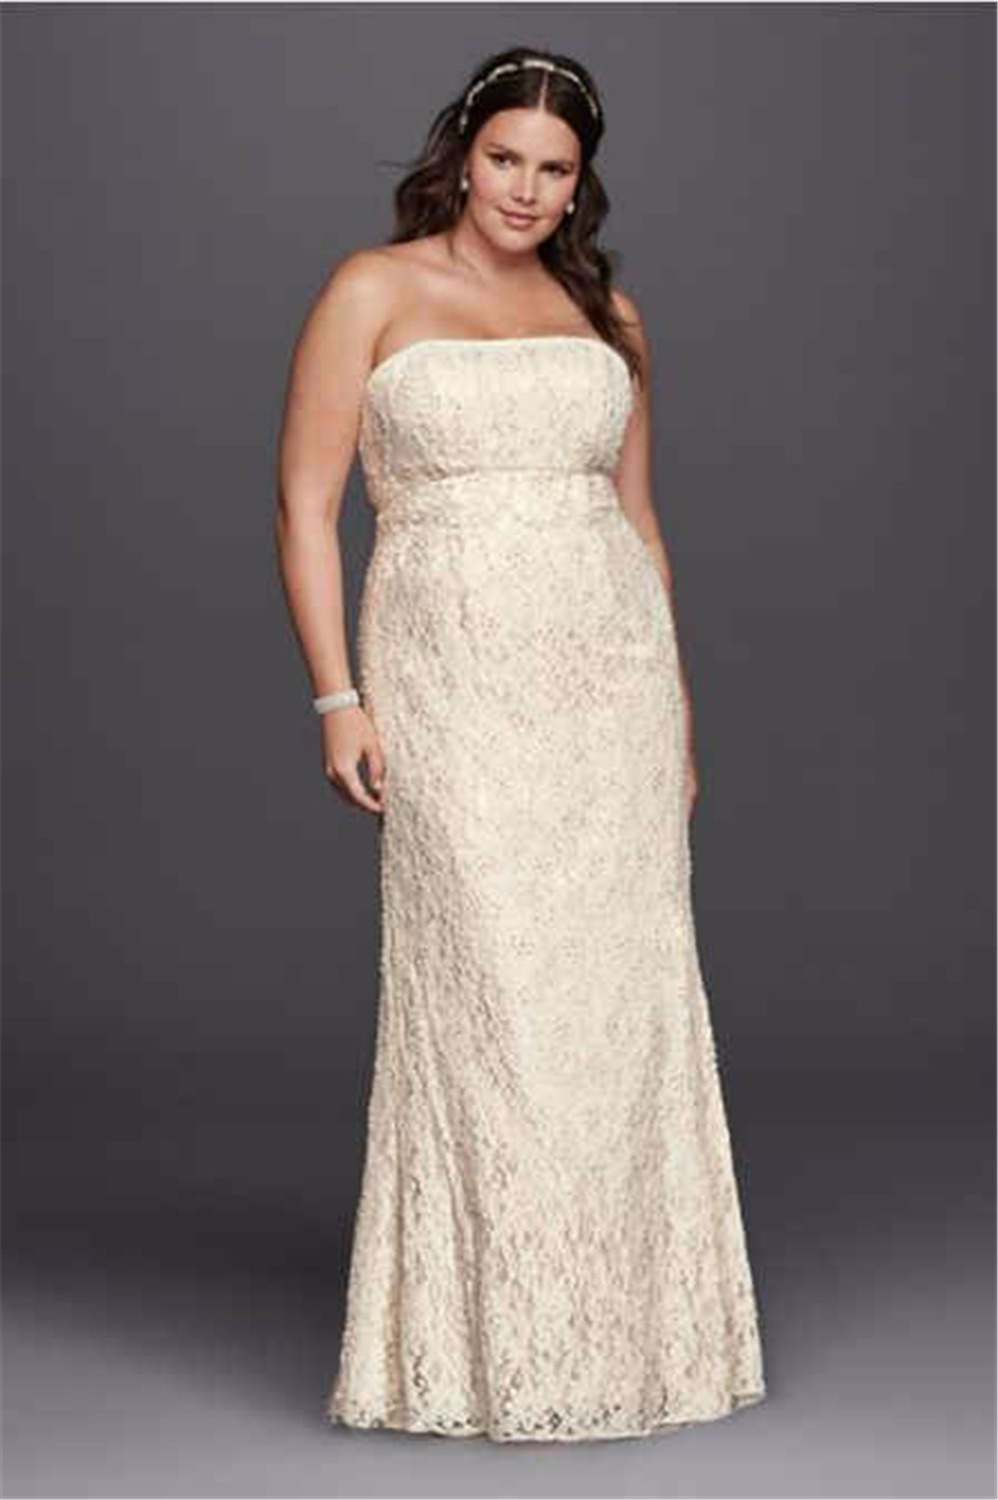 Online get cheap champagne color plus size dresses aliexpress strapless lace empire waist plus size wedding dress 9s8551 floor length champagne color crystals bridal dresses ombrellifo Gallery